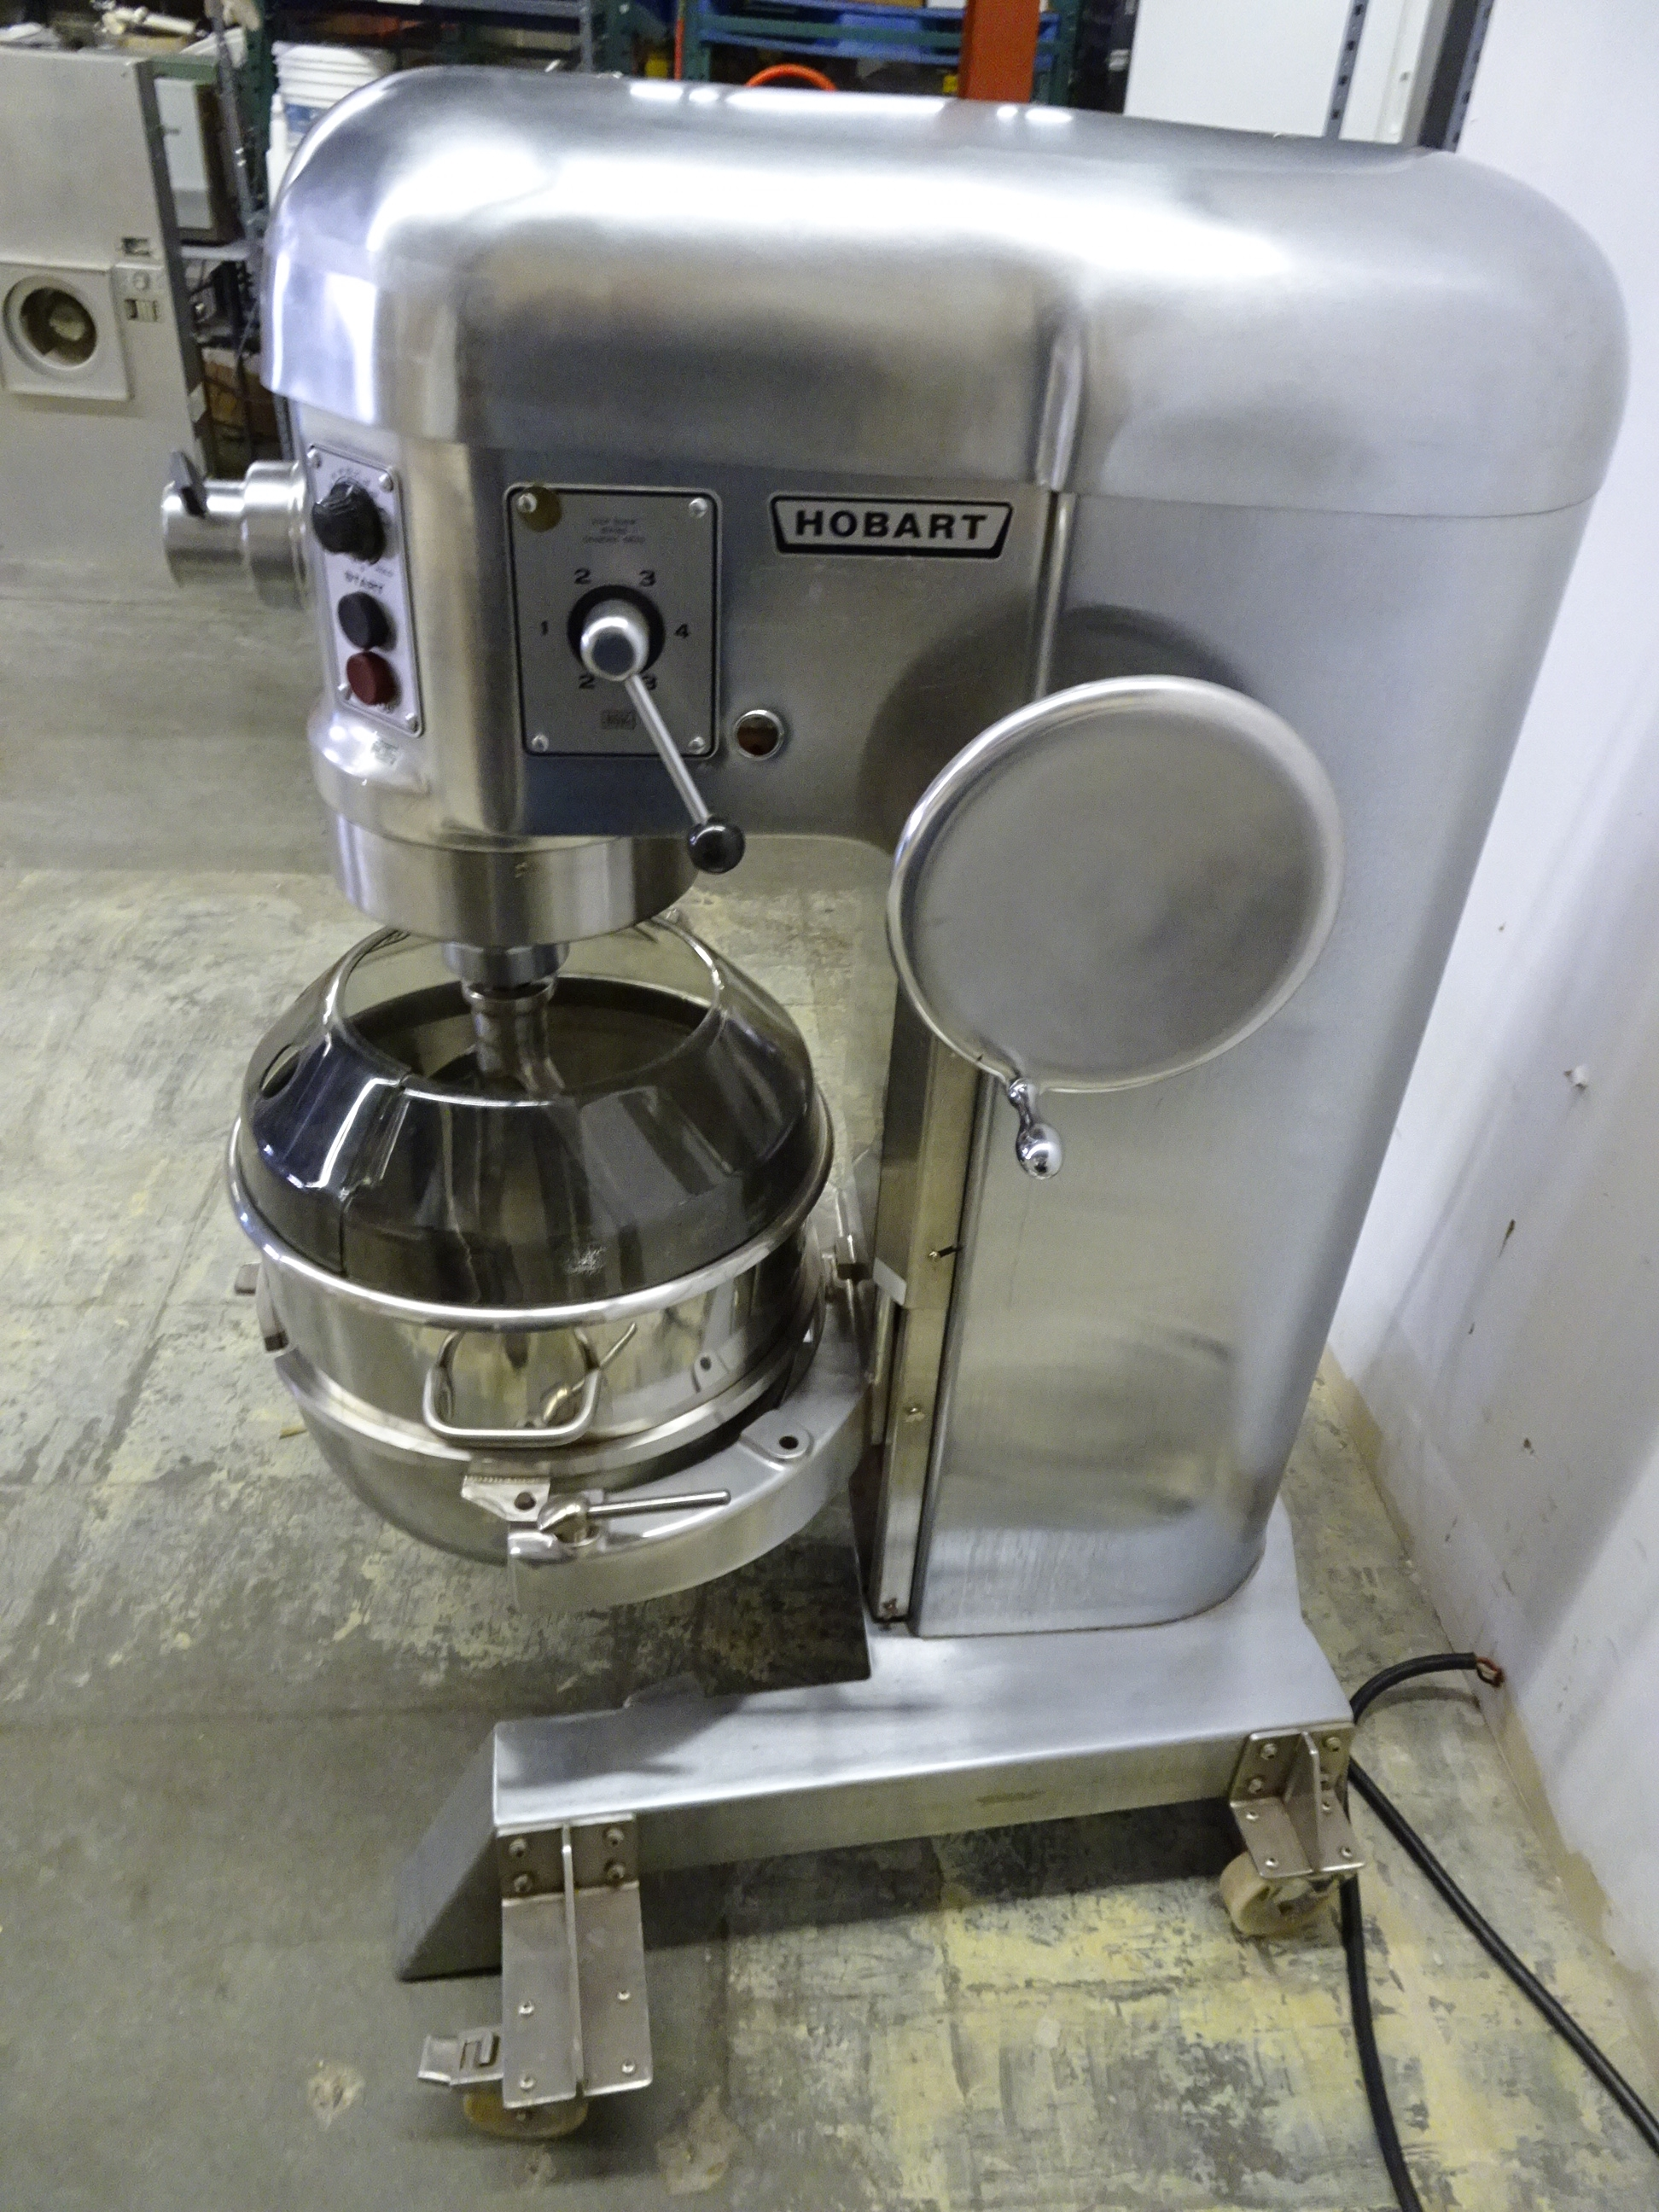 Lot 18 - Hobart Model H600DT 2HP Variable Speed Mixer With Manual Bowl lift, Bowl, Mixer, Mixing Guard, 460V,